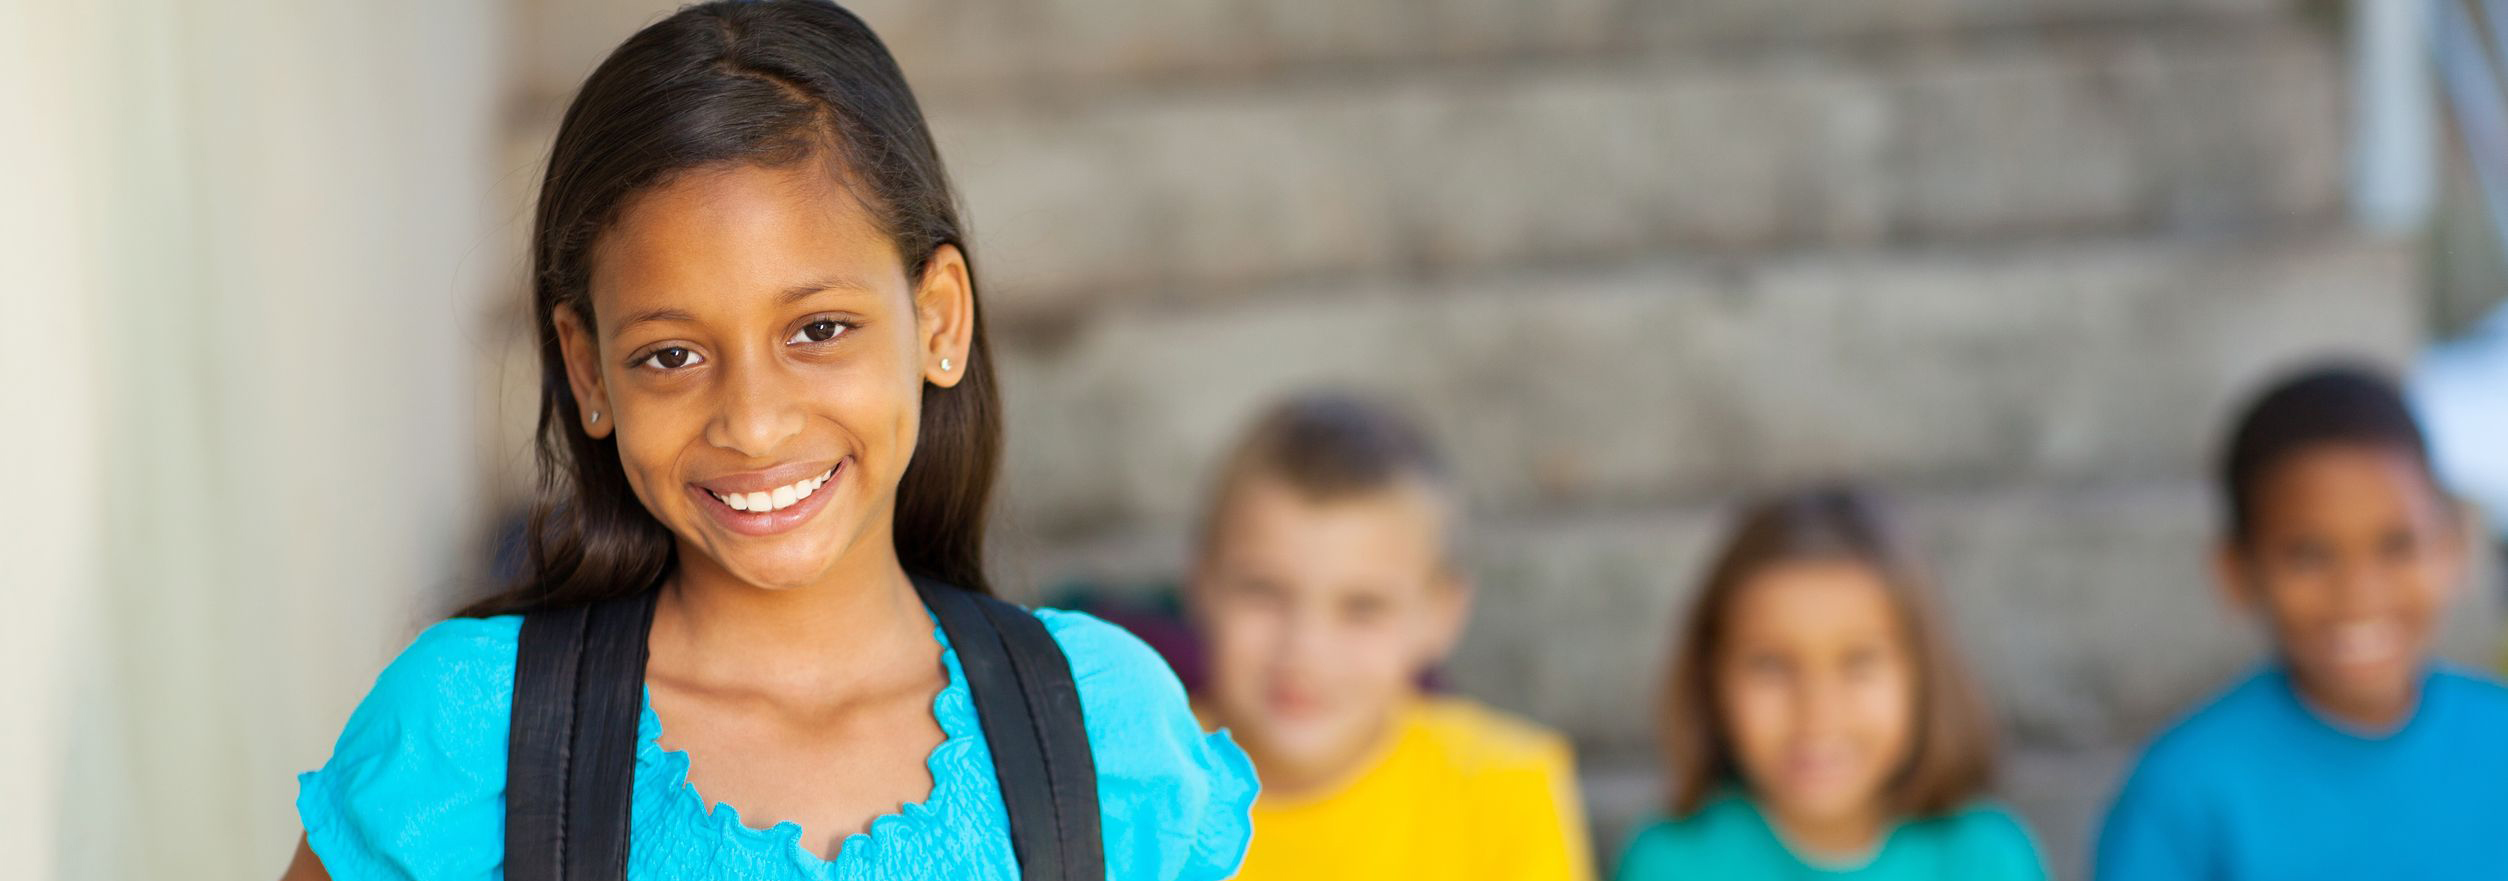 Young girl at school smiling